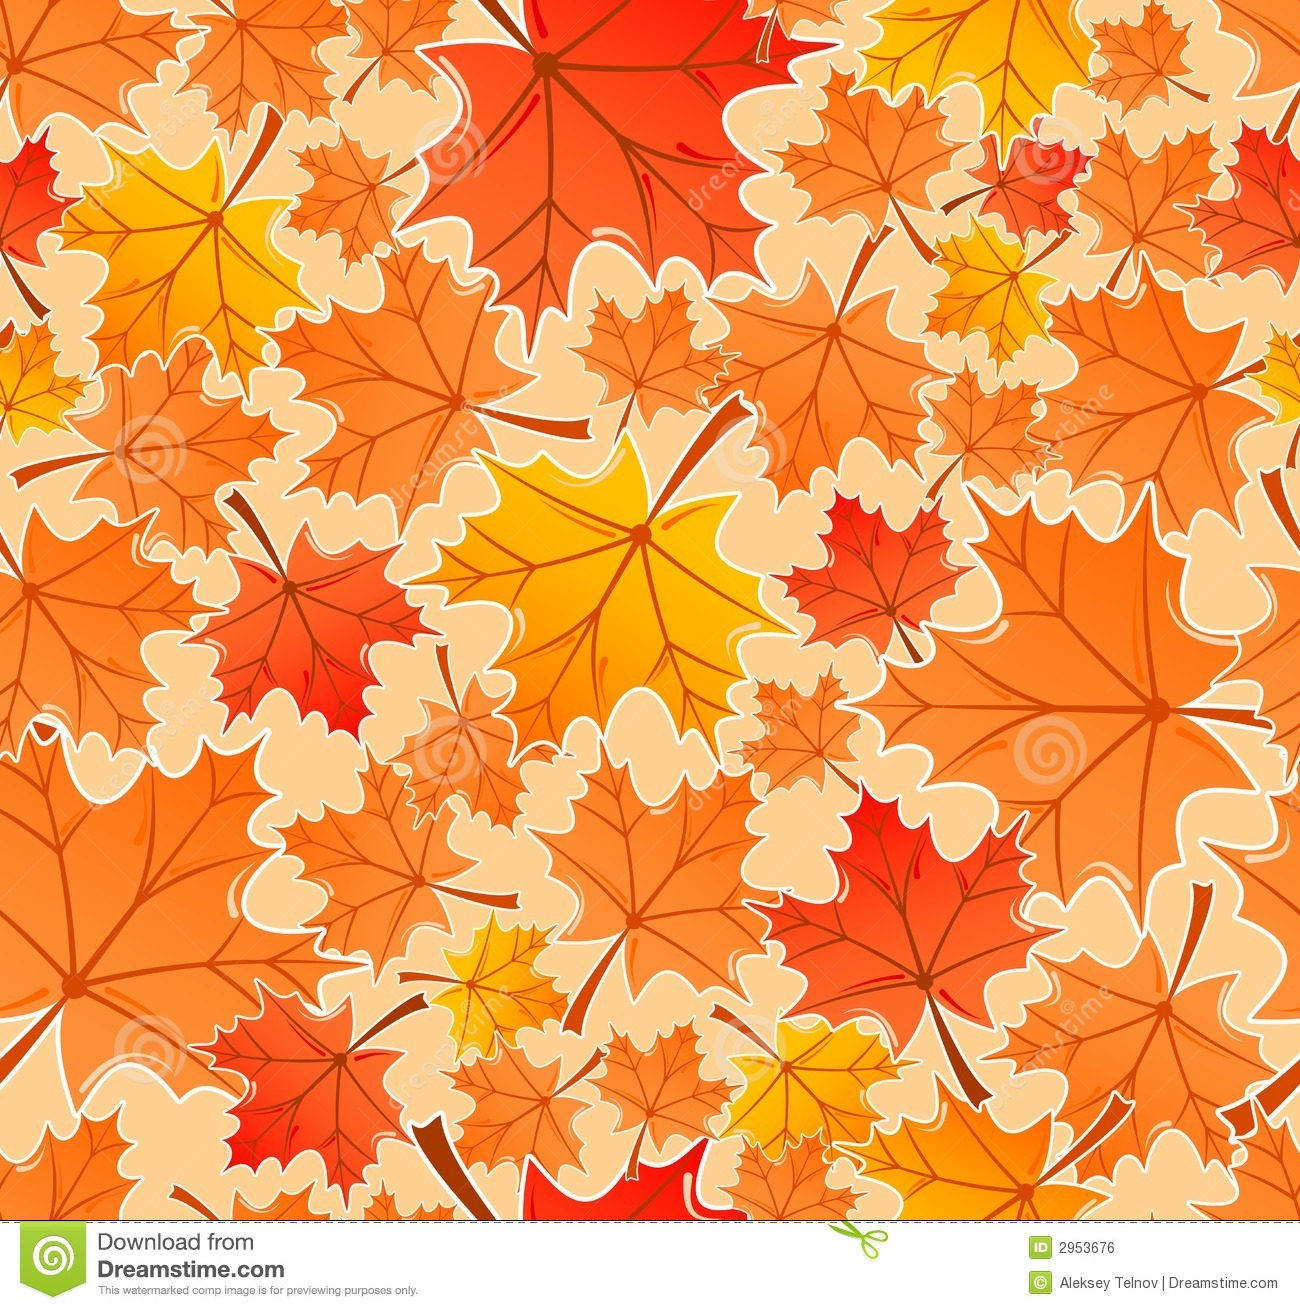 Fall Maple Leaf Tiled Wallpaper Autumn Leaves Seamless Pattern Stock Vector Illustration